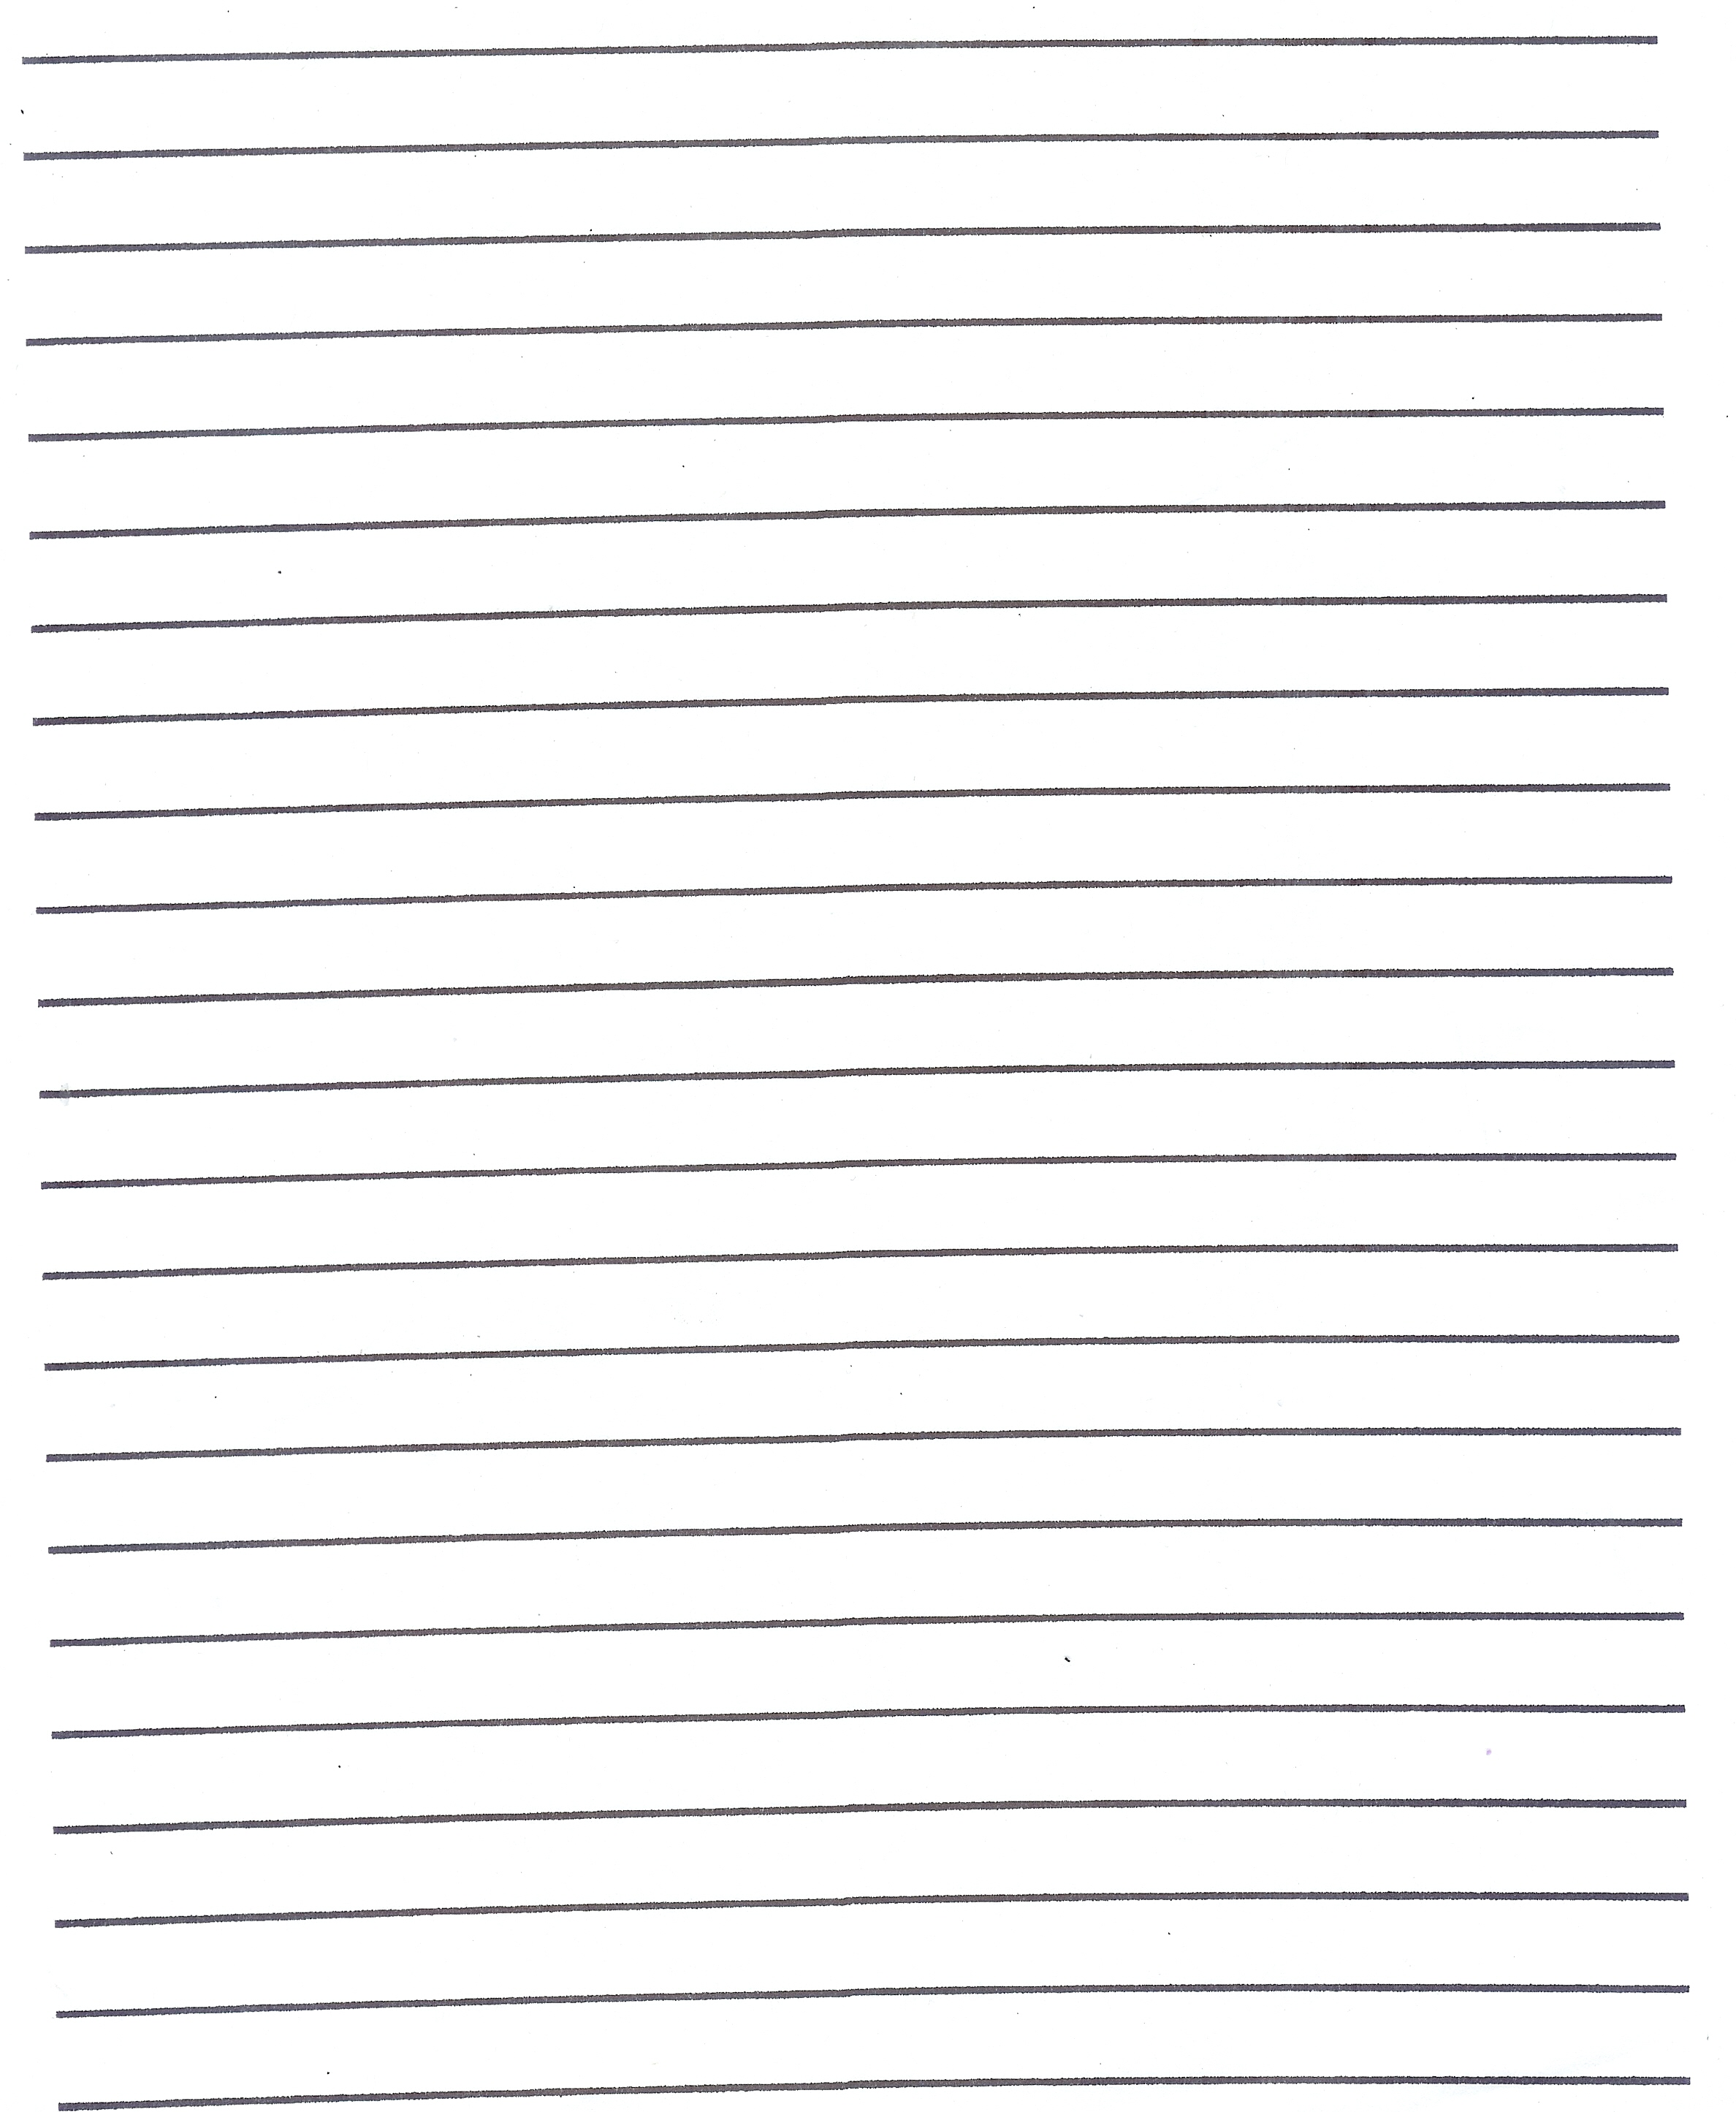 first writing paper Blank top handwriting paper blank top paper is sometimes called story paper the top part of the paper is unruled and can be used for drawings i have blank top paper in both handwriting ruled: the top part of the paper is unruled and can be used for drawings.